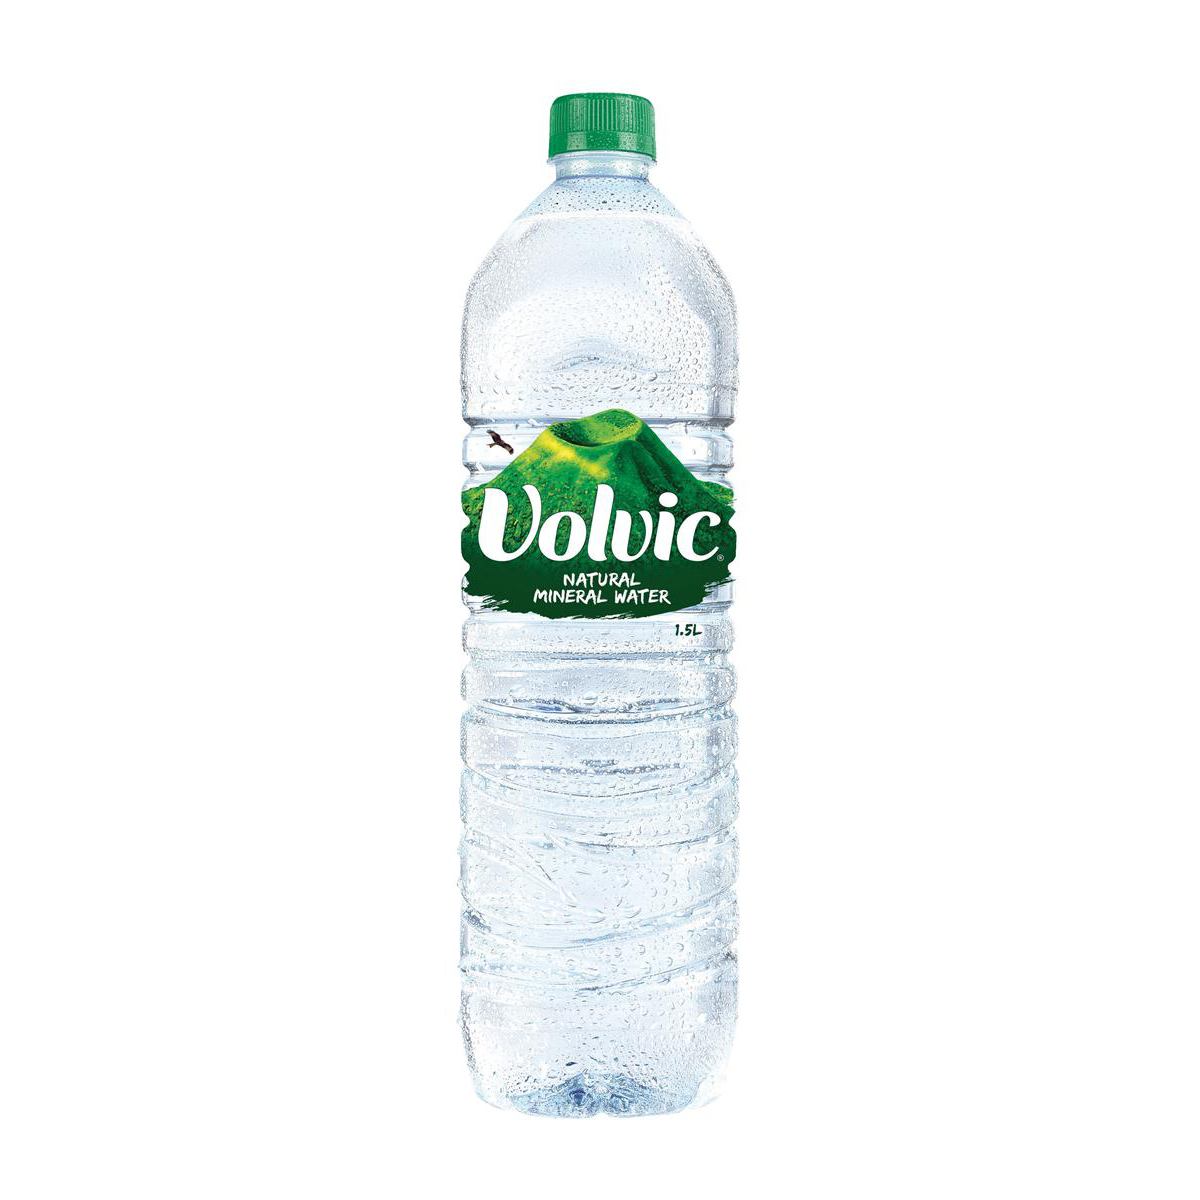 Volvic Natural Mineral Water Still Bottle Plastic 1.5 Litre Ref 8873 [Pack 12]